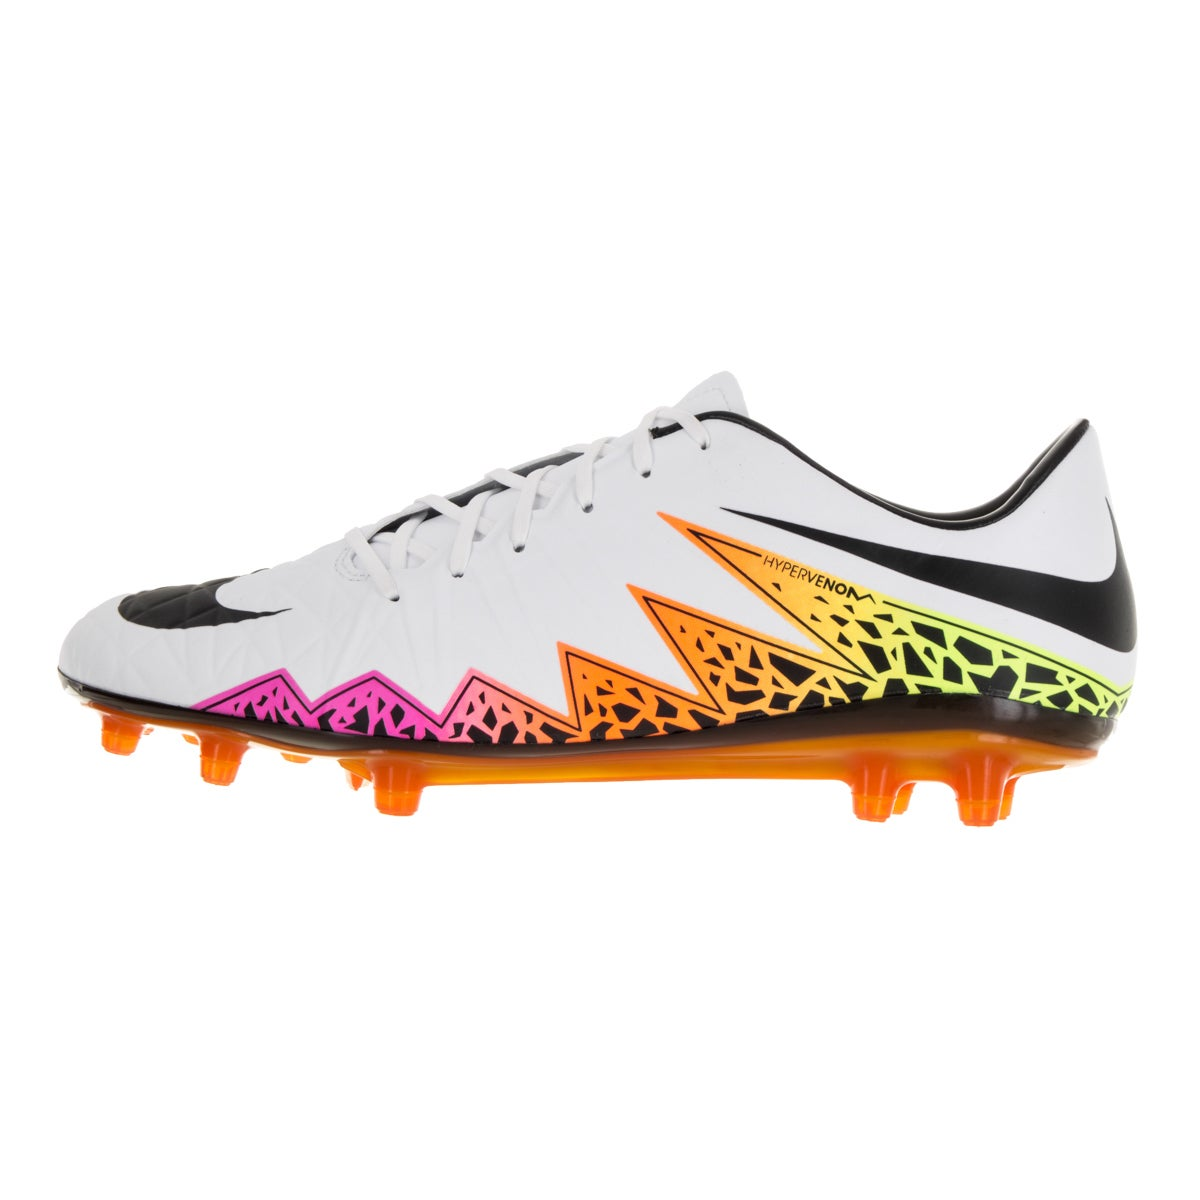 94525bc7521 Shop Nike Men s Hypervenom Phatal II Fg White Black Total Orange Volt Soccer  Cleat - Free Shipping Today - Overstock - 13394883